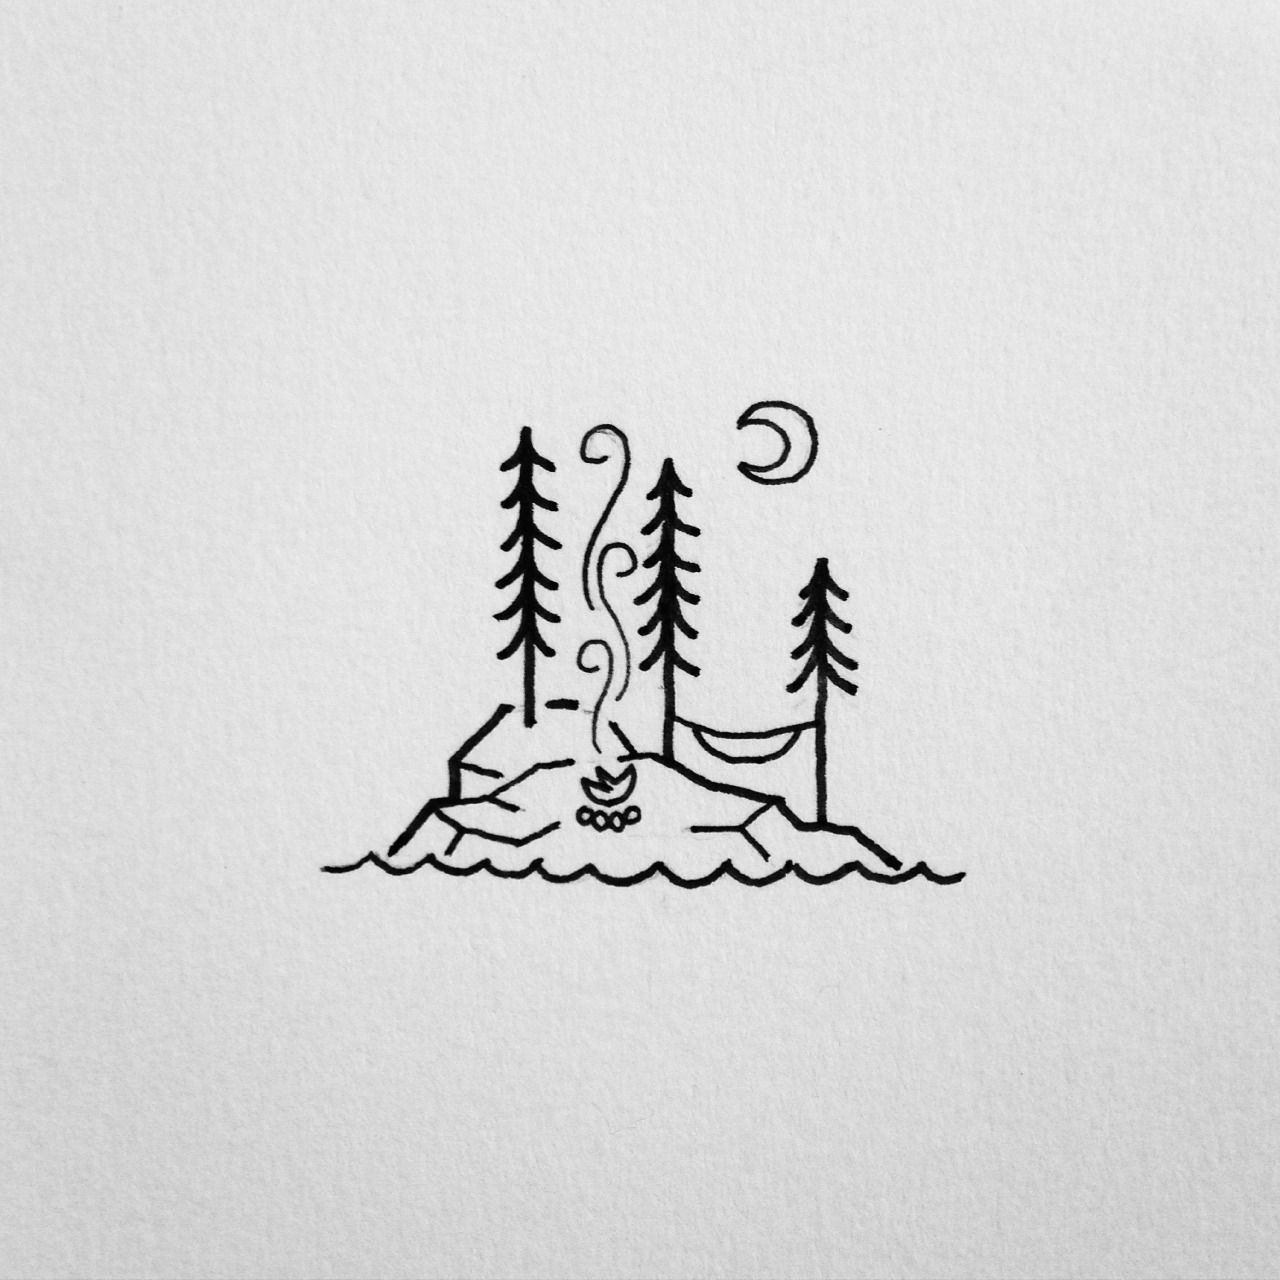 Northern Mn Inspired Doodle Tumblr Drawings Easy Cool Drawings